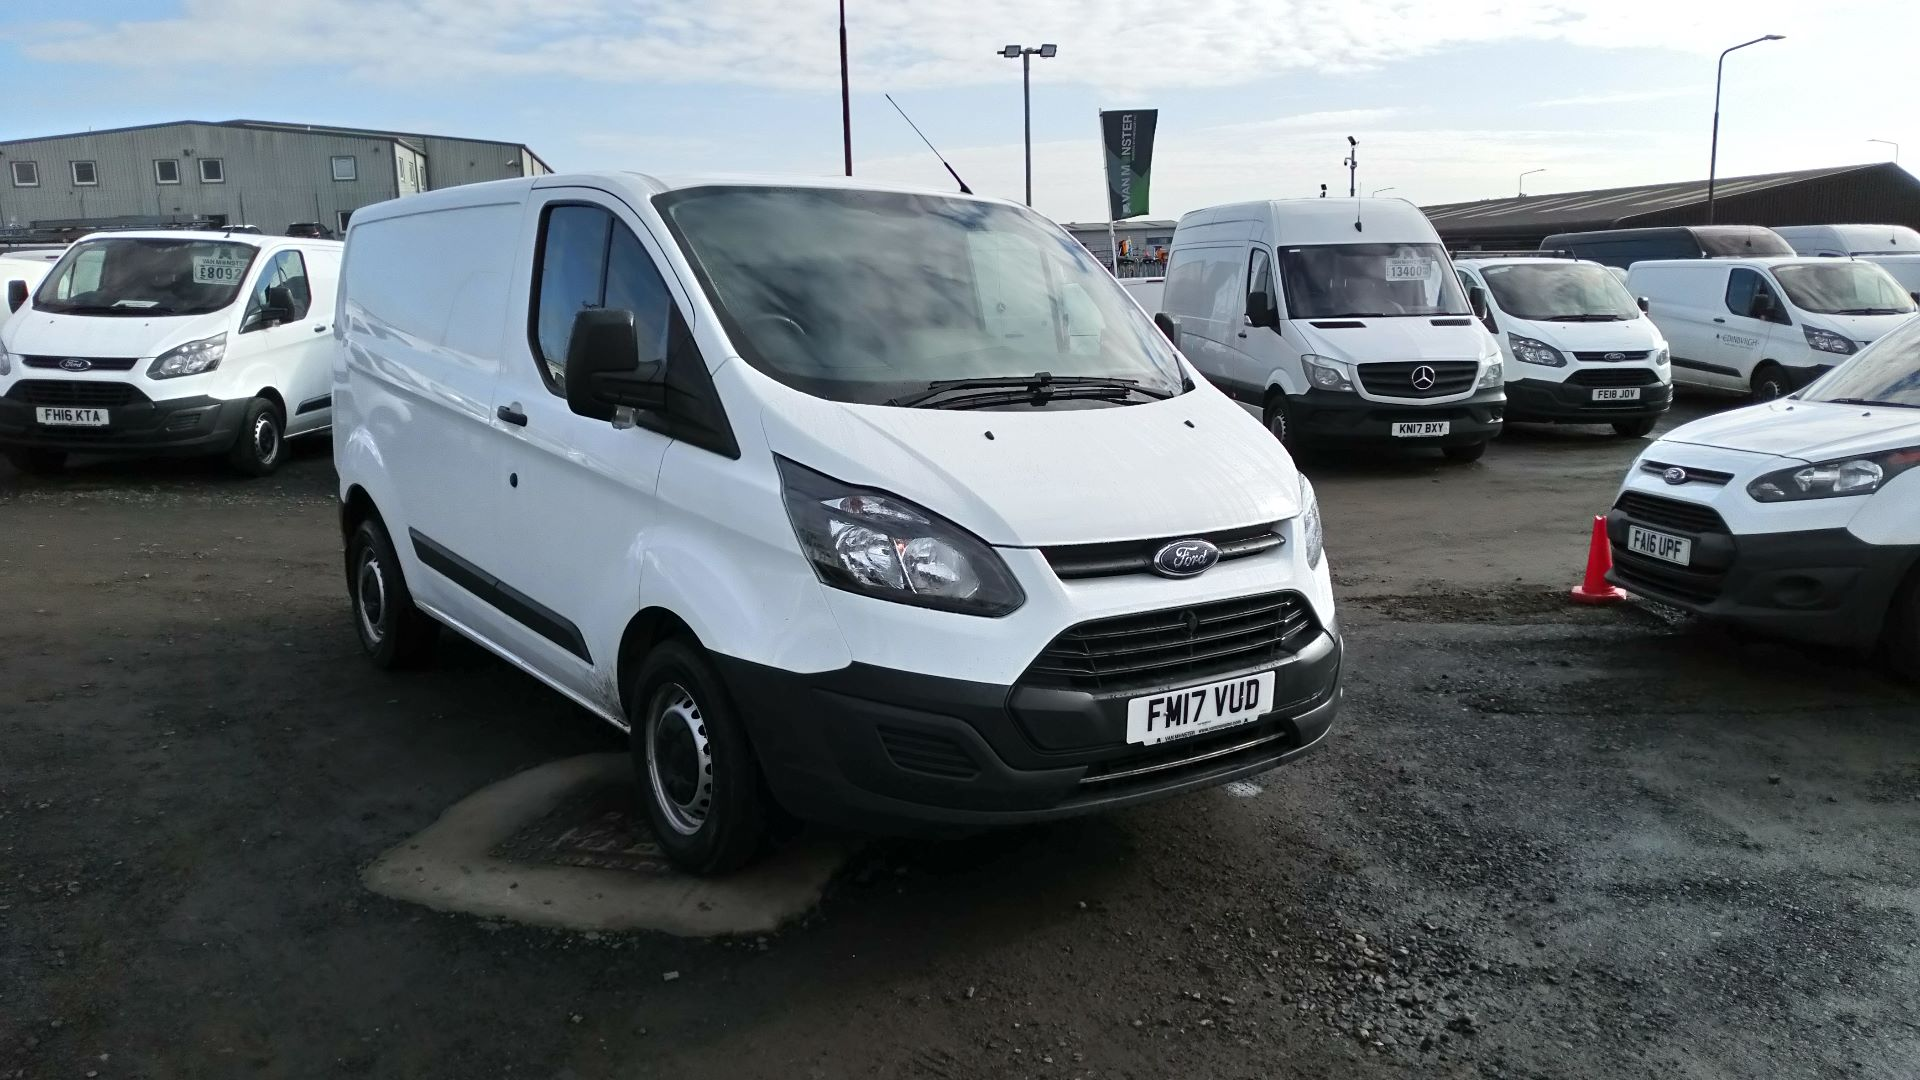 2017 Ford Transit Custom 2.0 Tdci 105Ps Low Roof Van (FM17VUD)